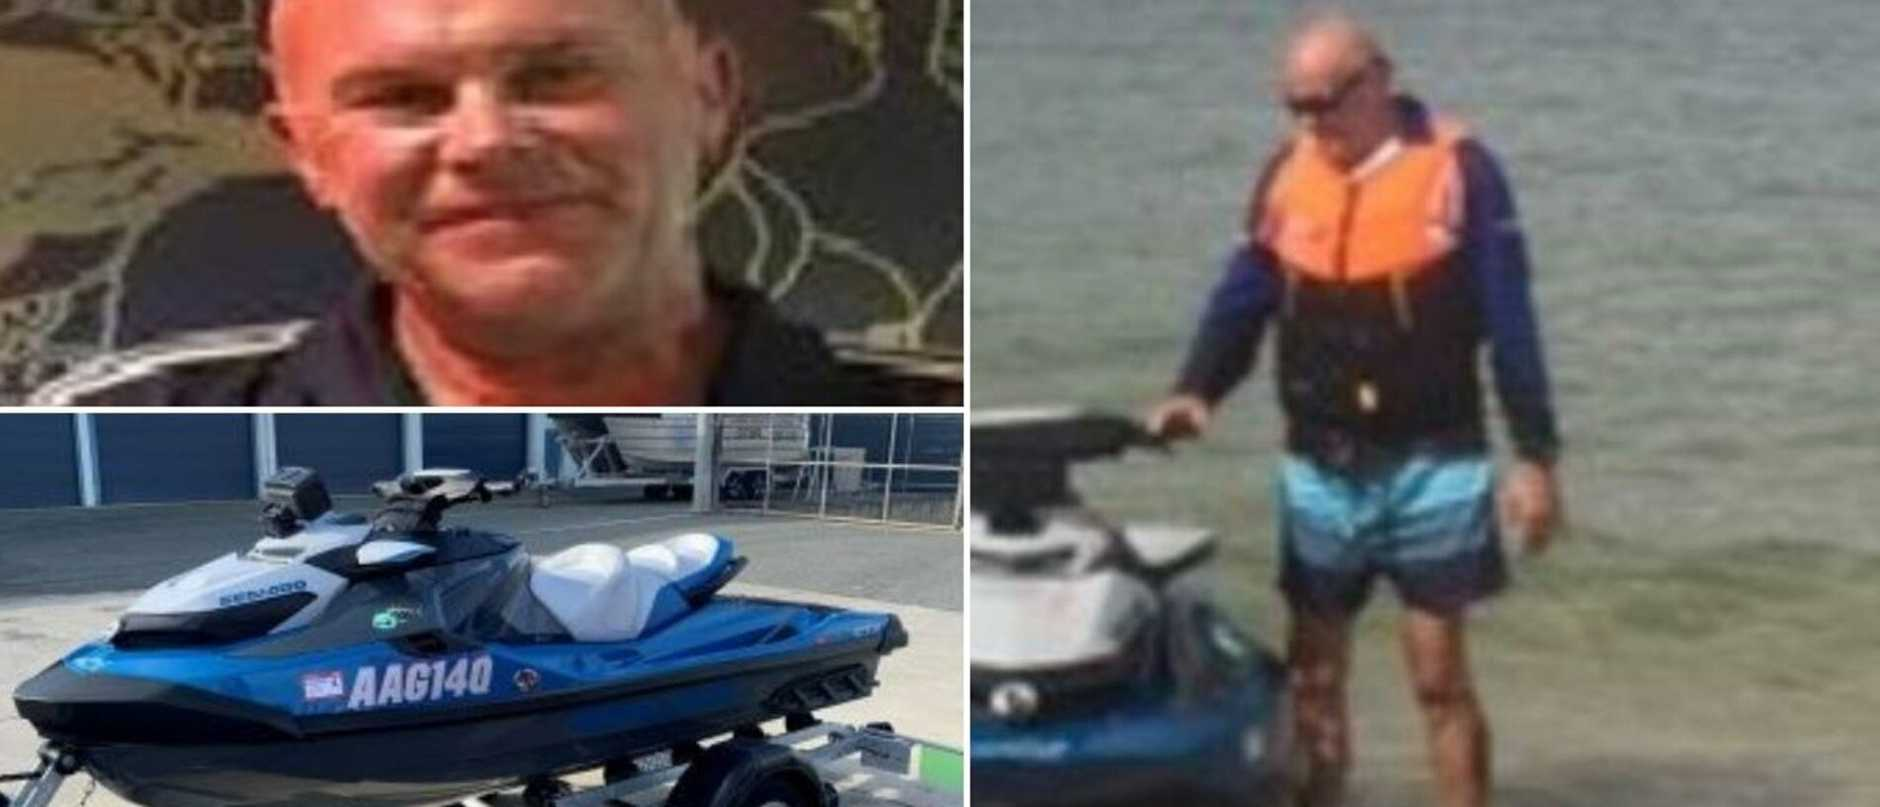 Experienced jet skiers plan to embark on an informal mission to find Anthony Schilperoort who has been missing since last Sunday.